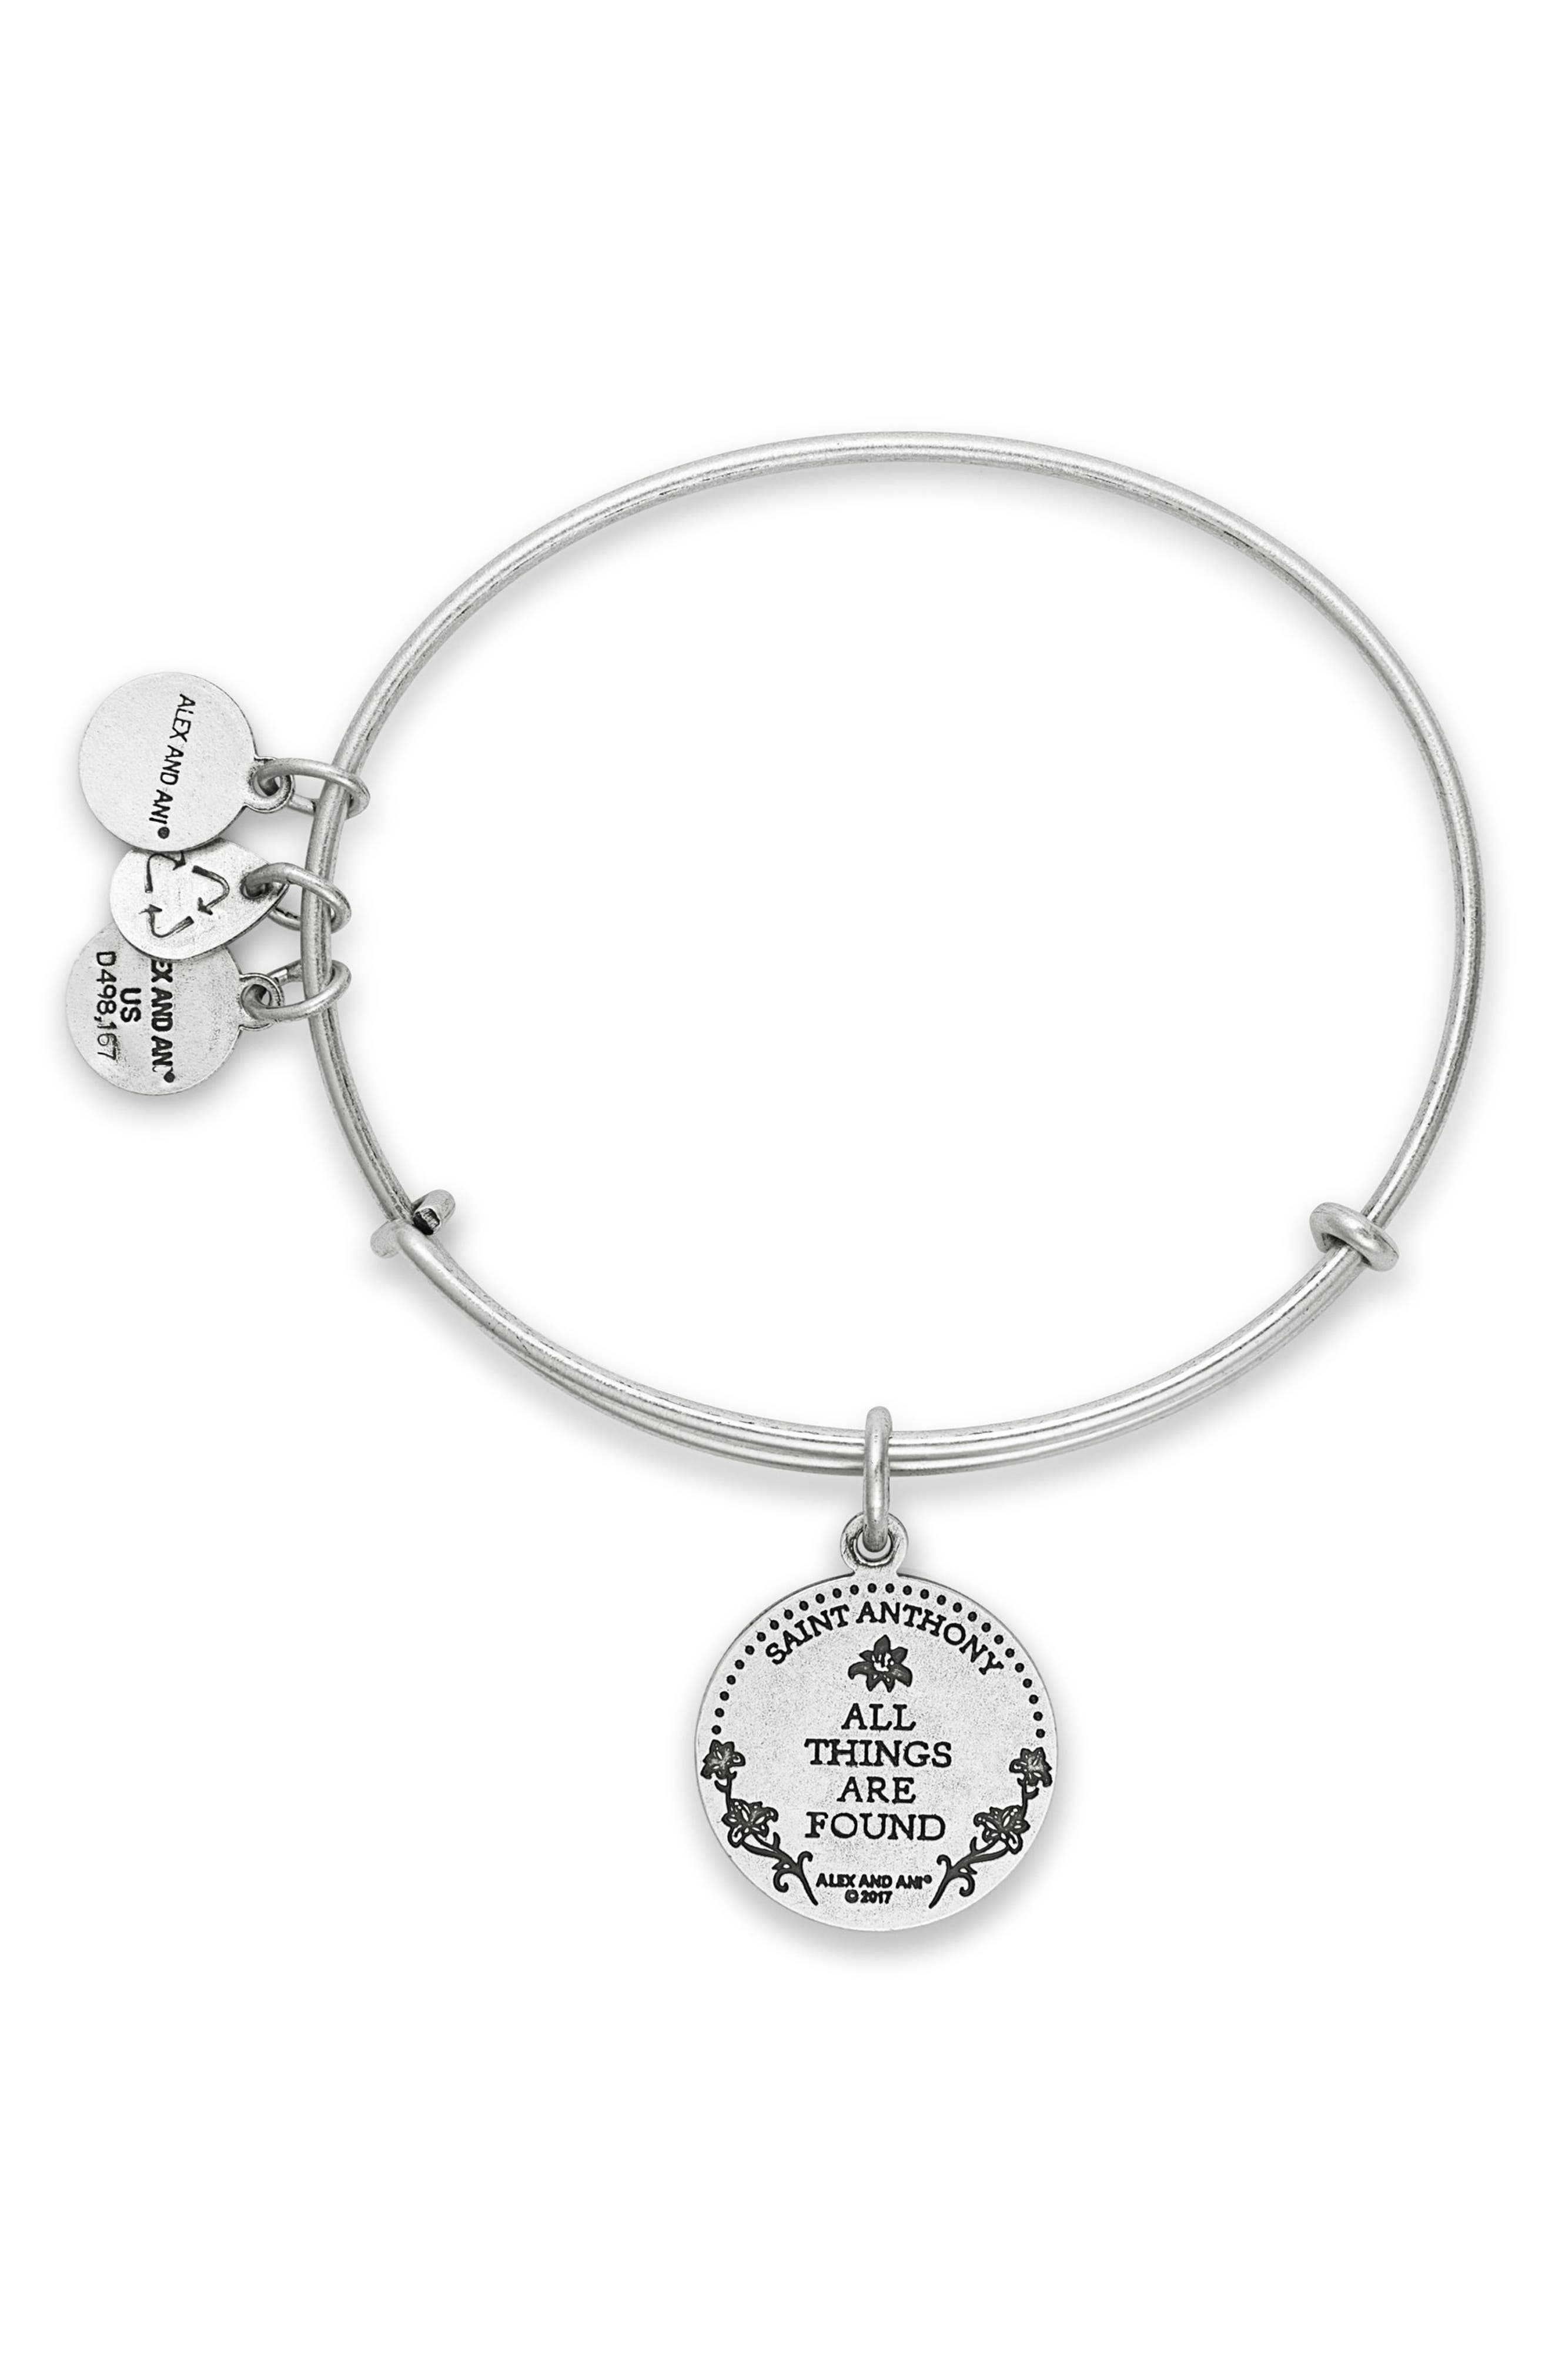 St. Anthony Adjustable Wire Bangle,                             Alternate thumbnail 2, color,                             040